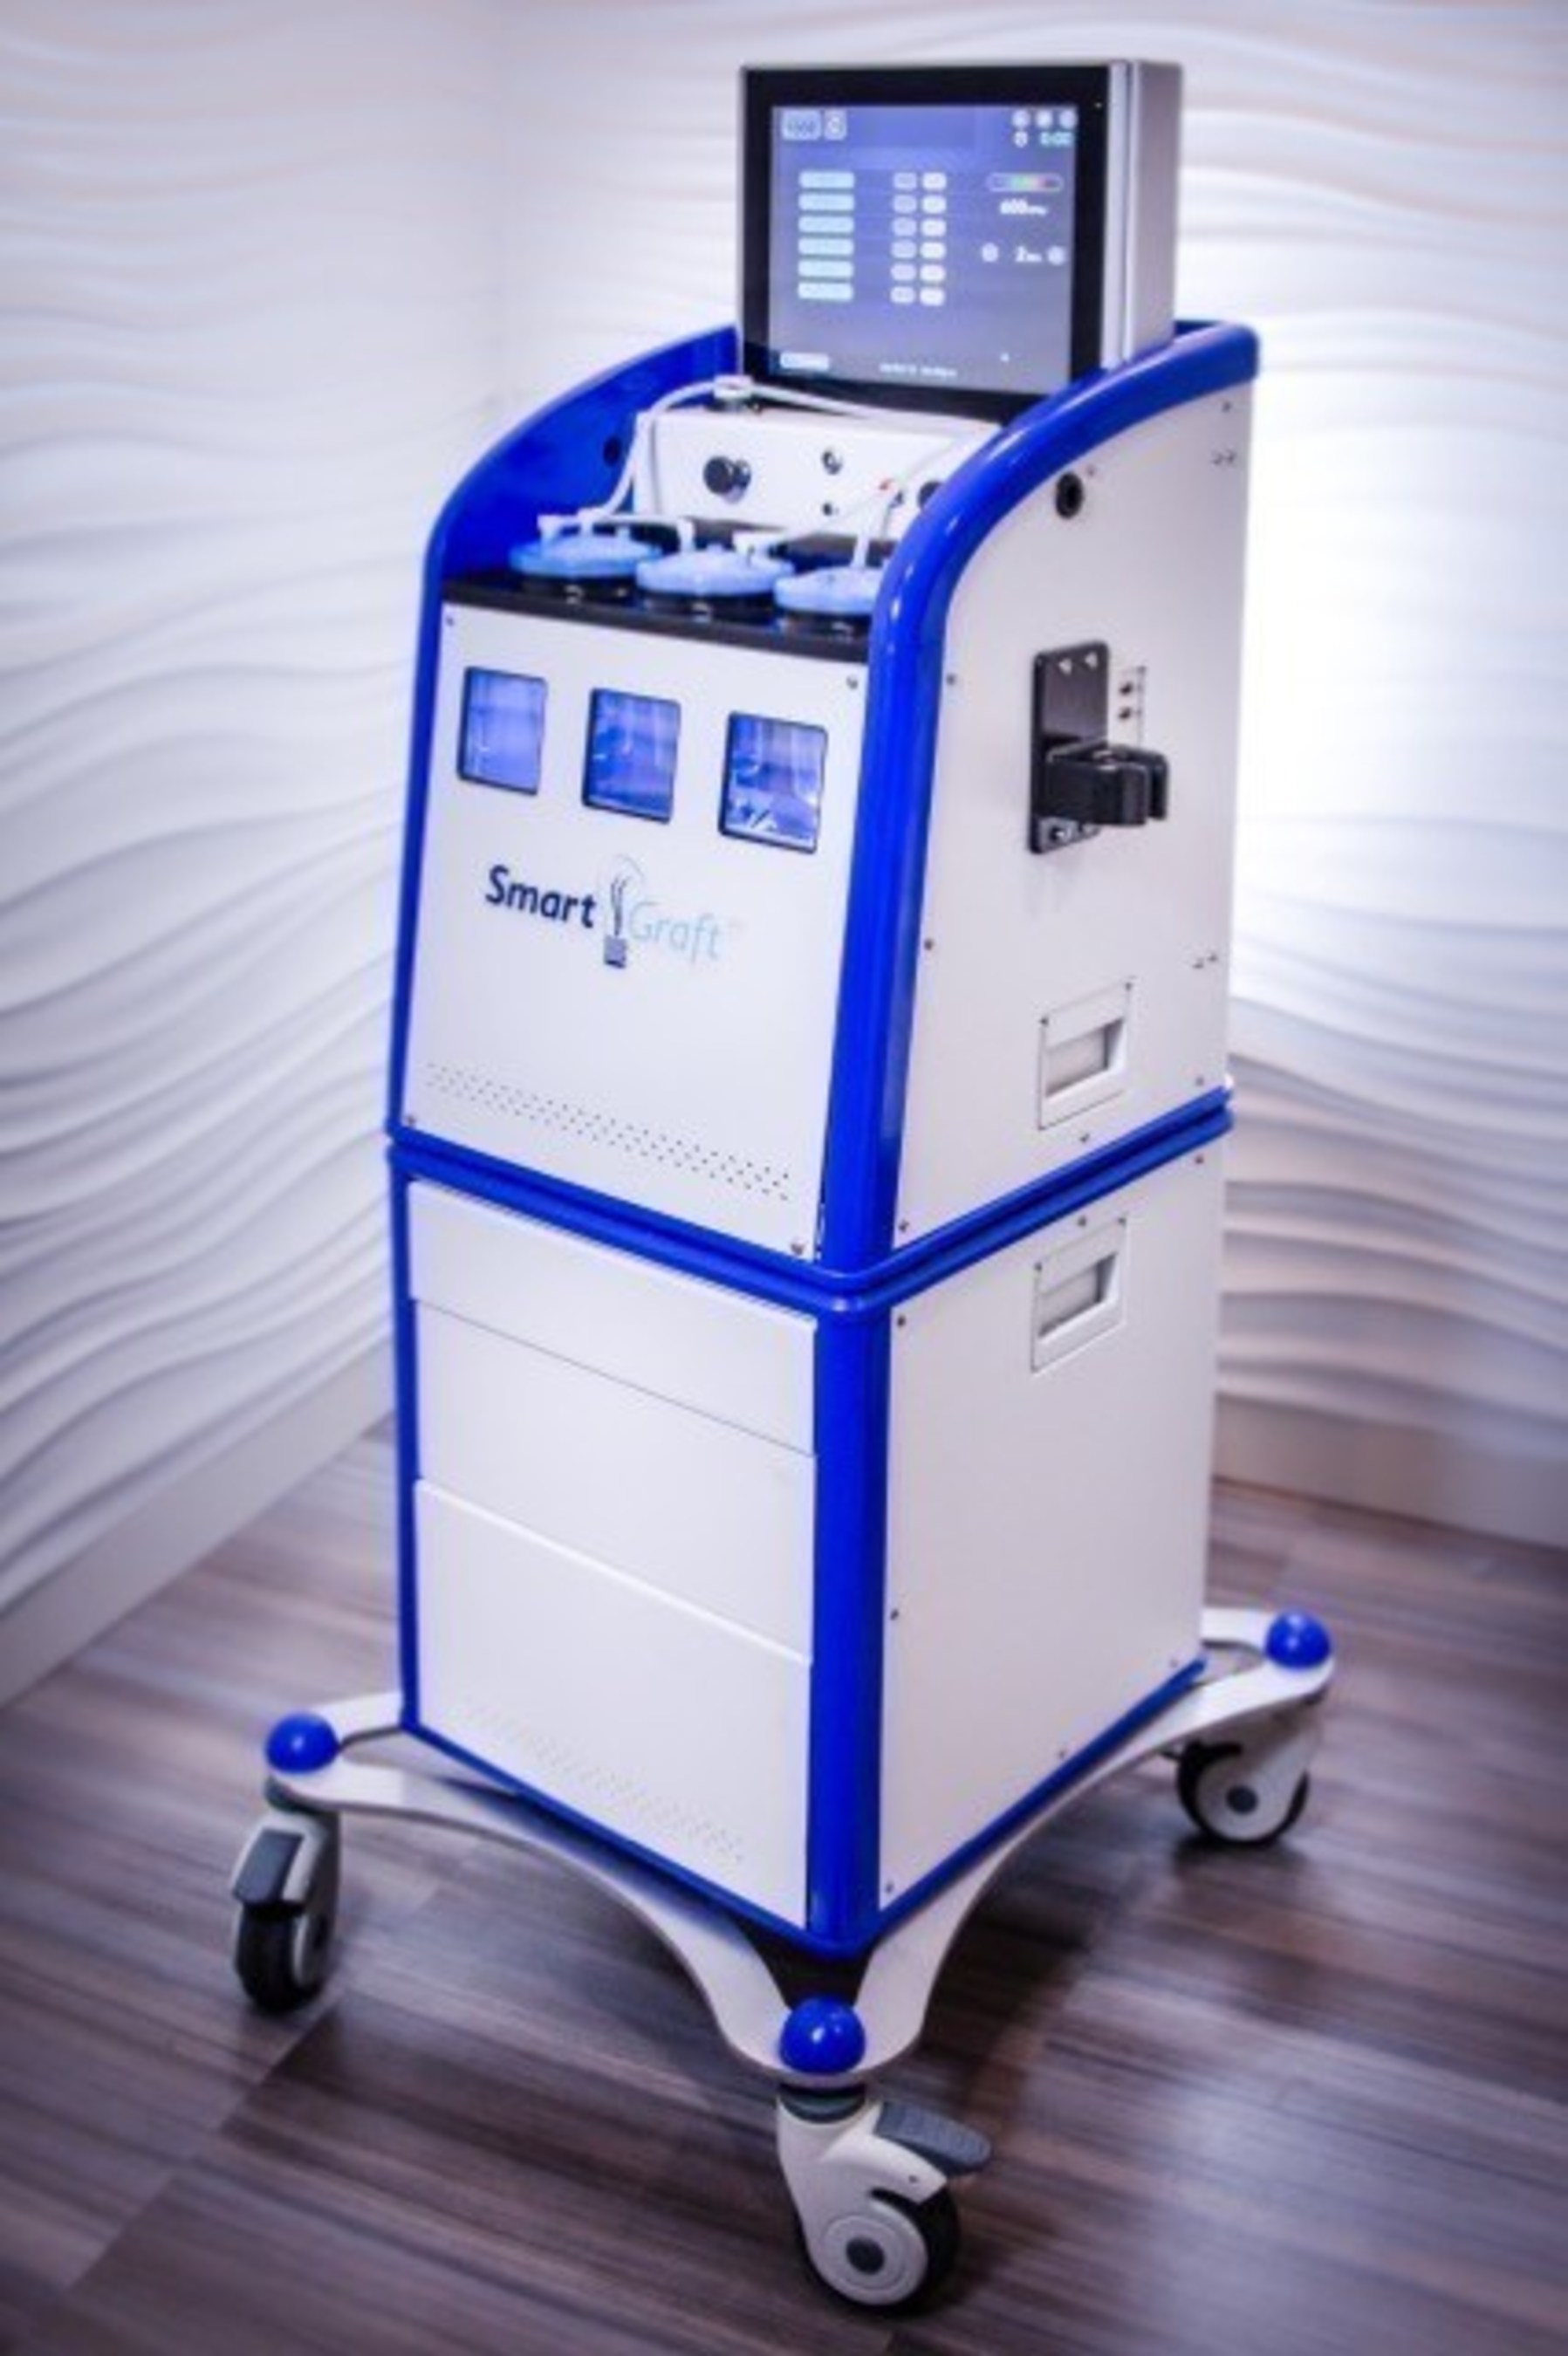 Vision Medical Announces The Global Launch Of SmartGraft At The 2015 Annual International Society